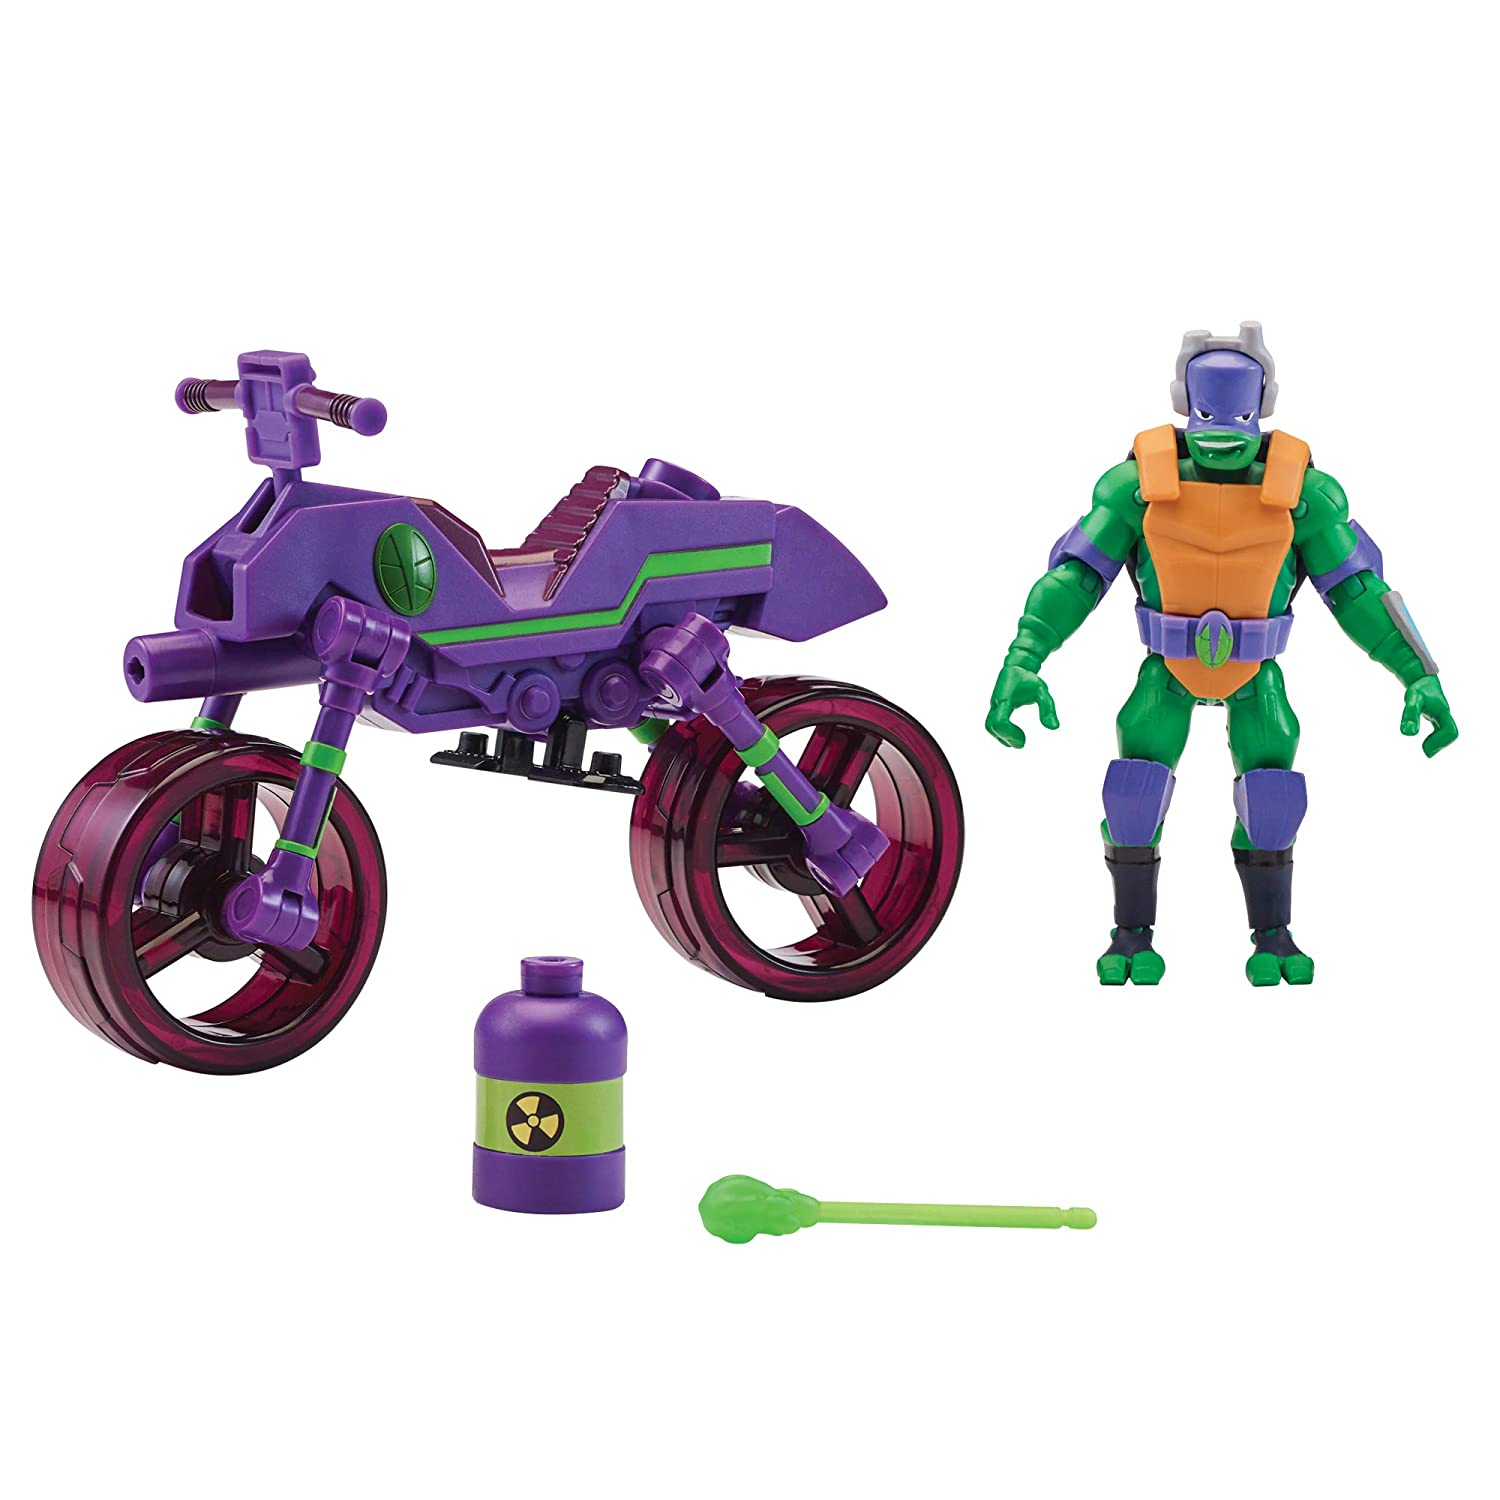 Rise of the Teenage Mutant Ninja Turtles Bug Buster Cycle with Exclusive Donatello